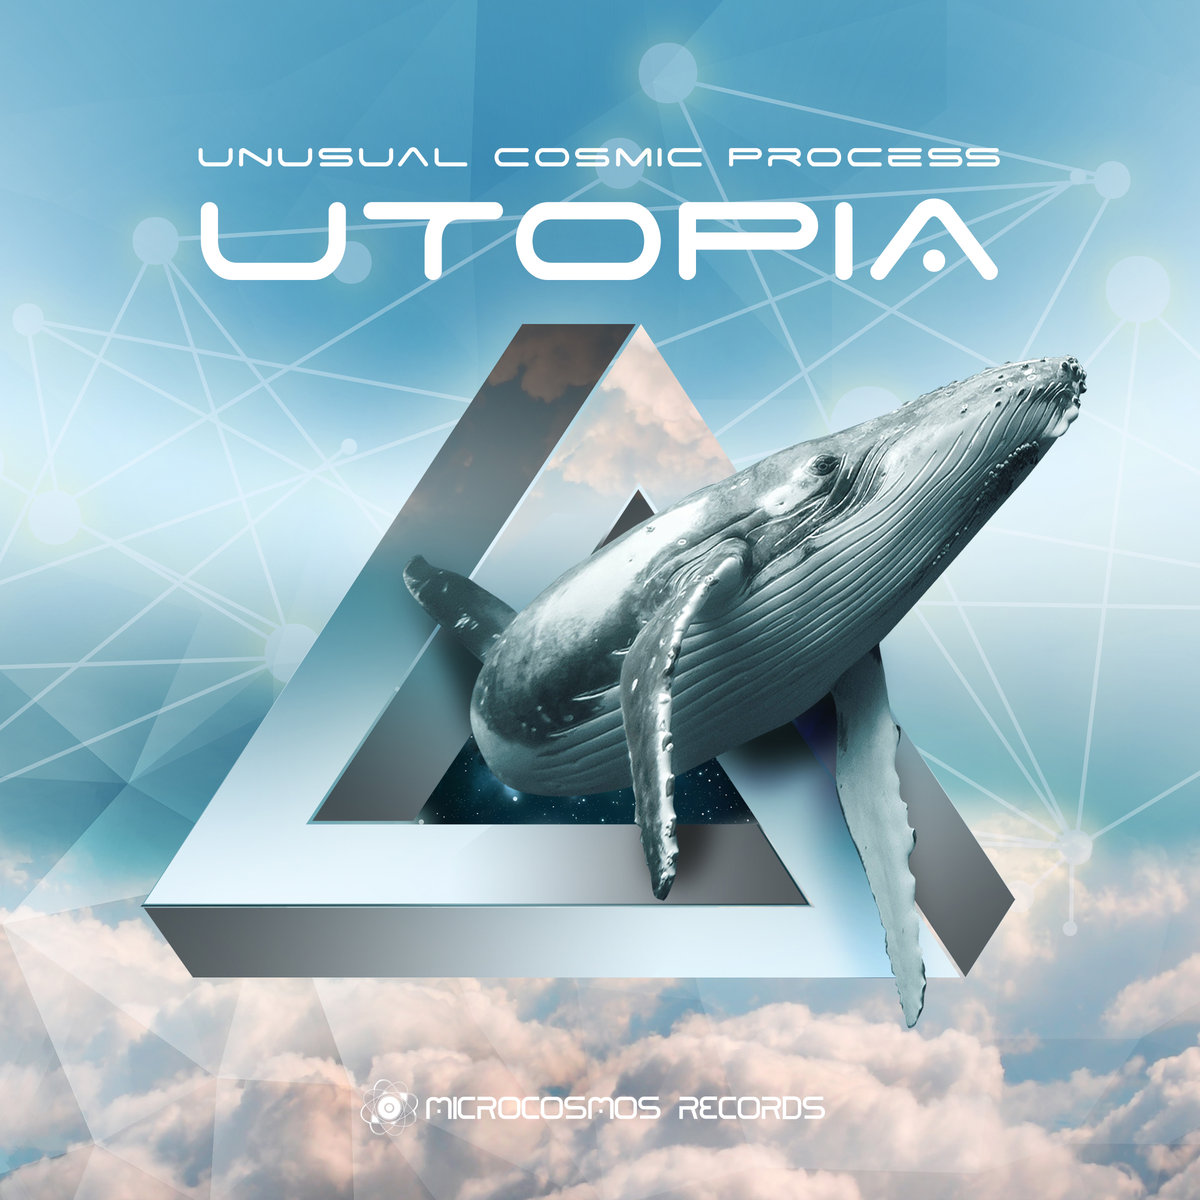 Unusual Cosmic Process - Utopia @ 'Utopia' album (ambient, chill-out)